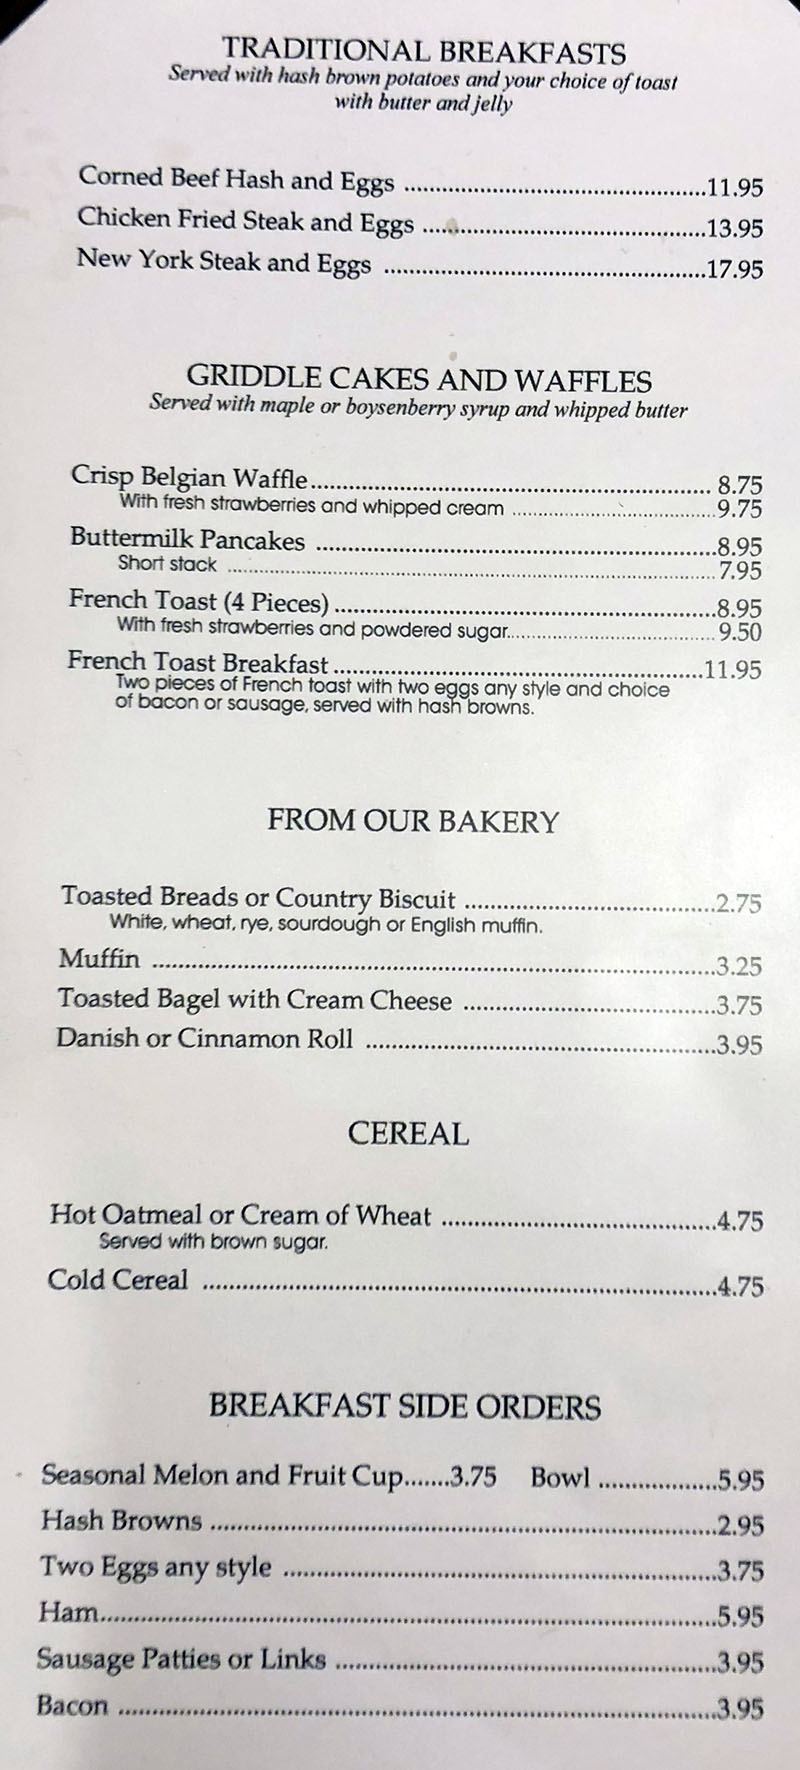 Cafe Milano Peppermill menu - traditional breakfast, pancakes, bakery, cereal, sides